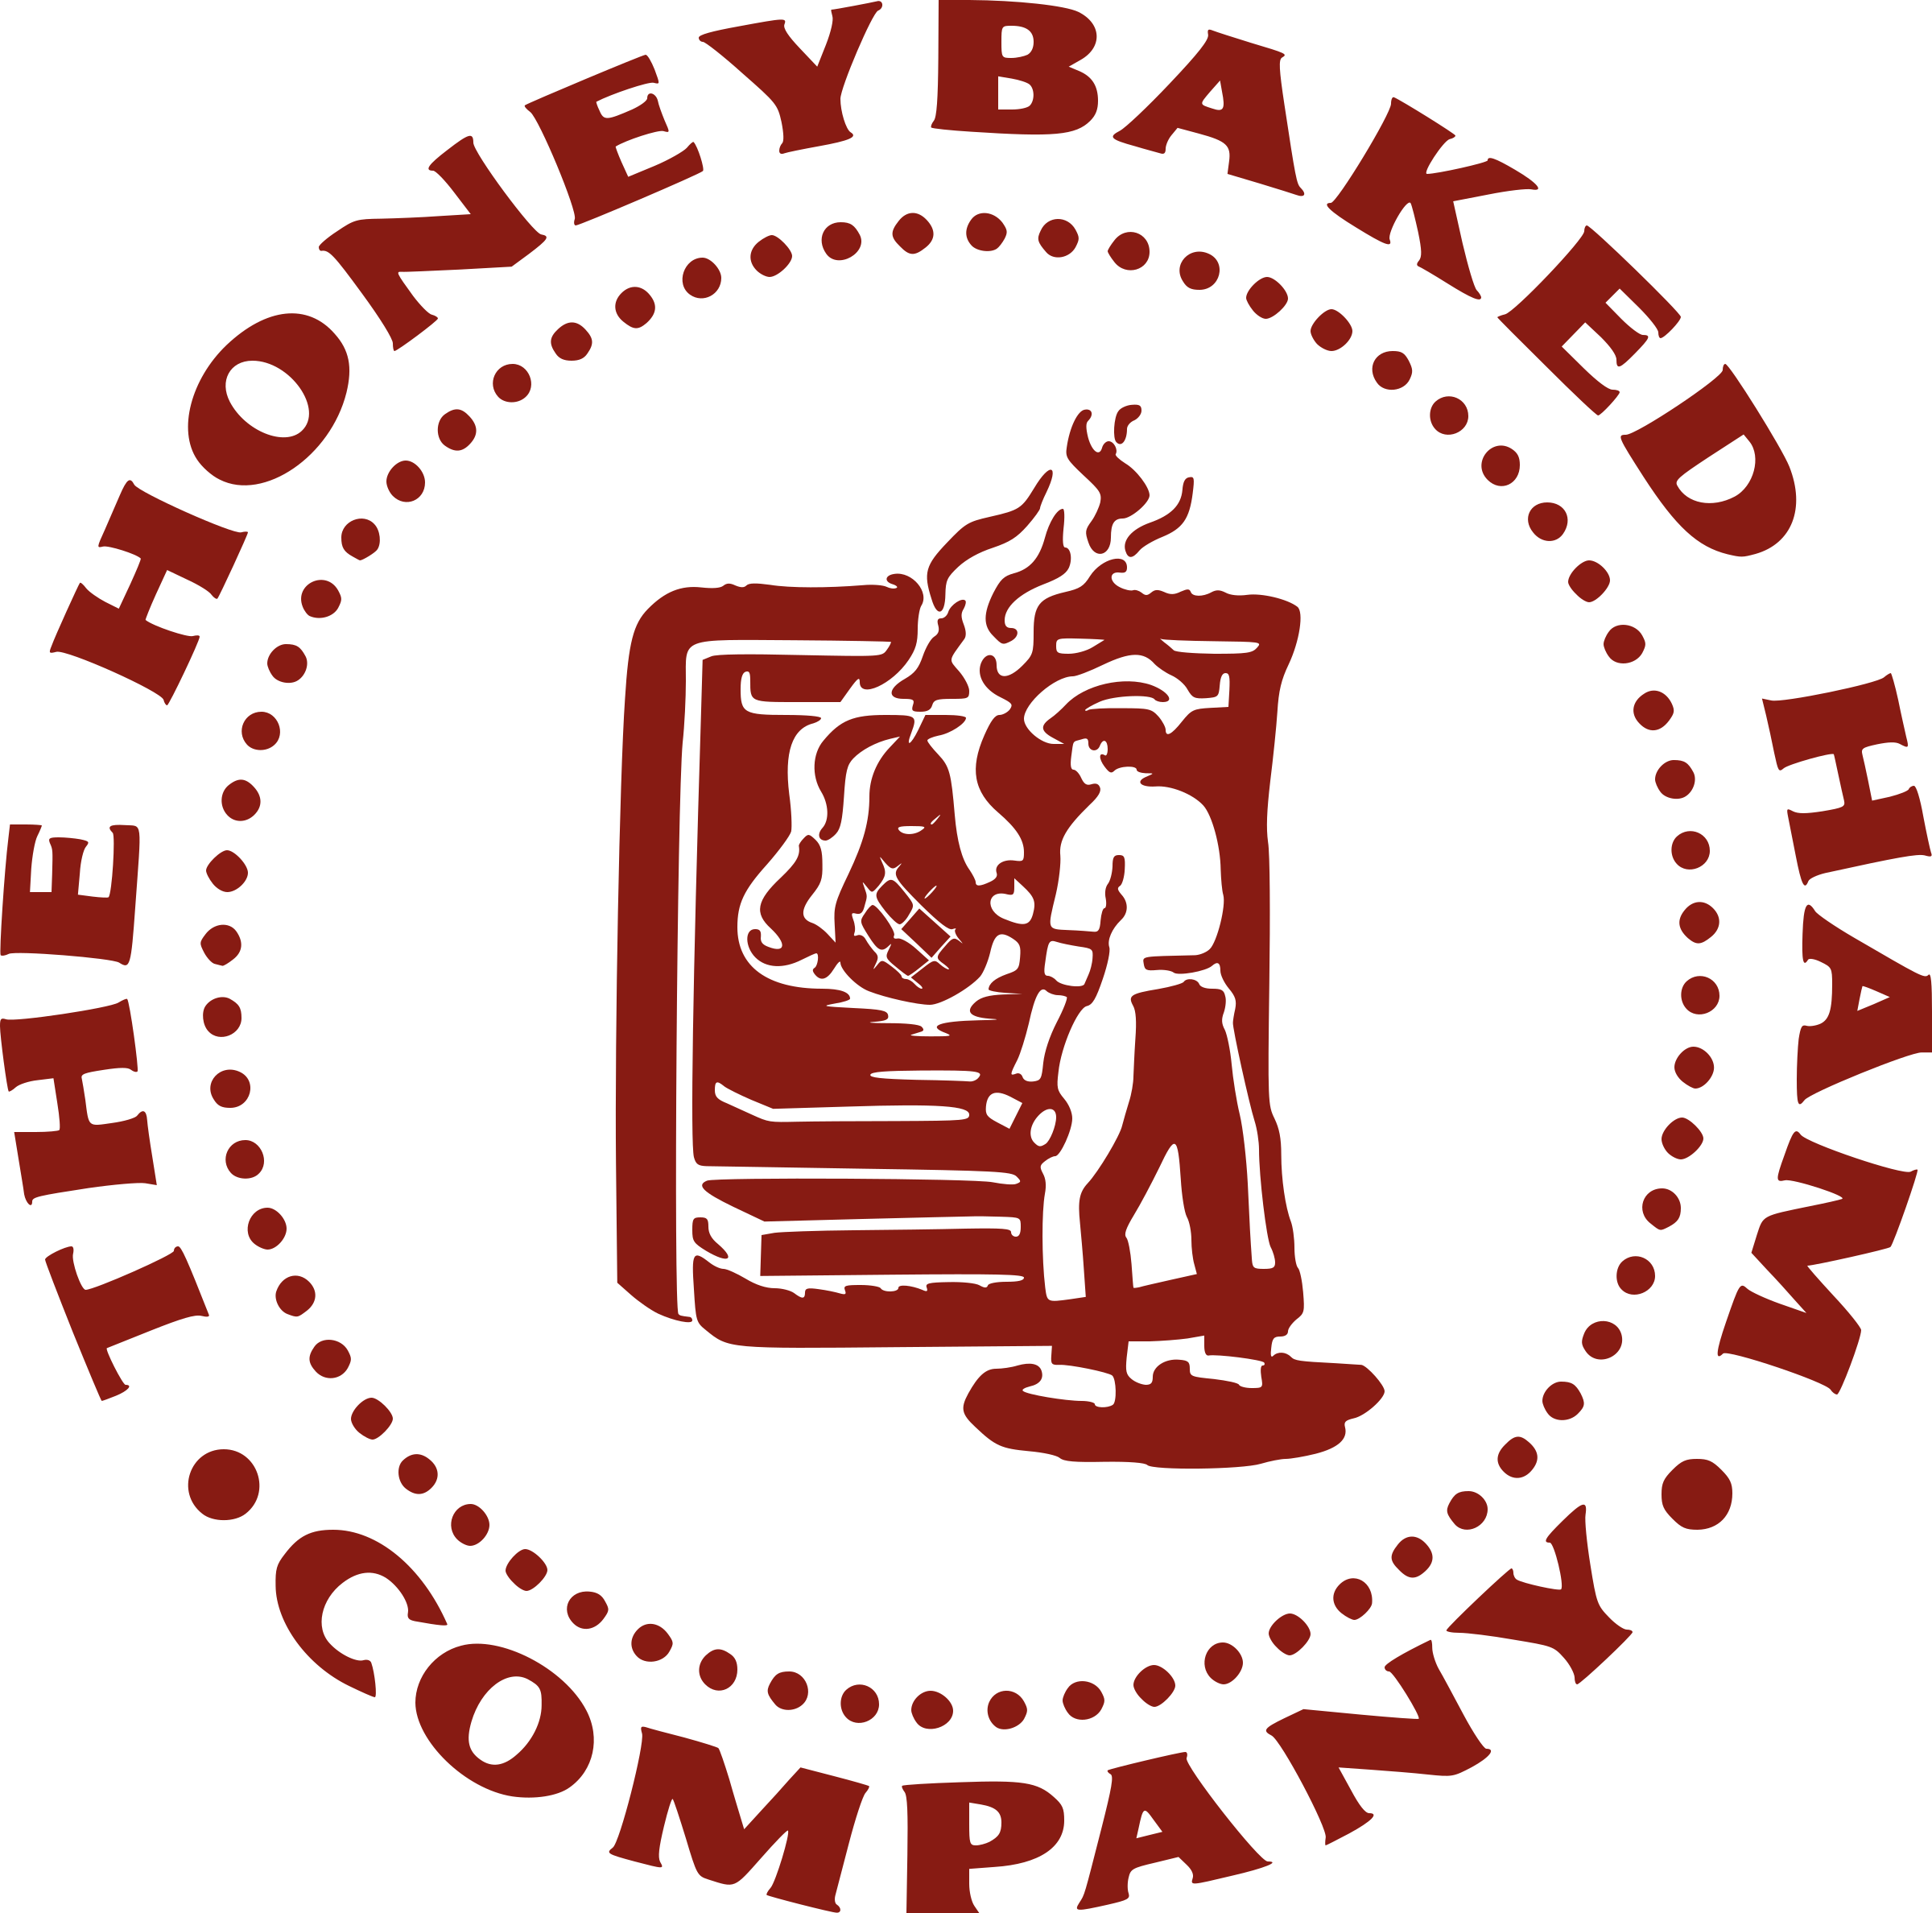 Ham vector. Honeybaked logo png transparent